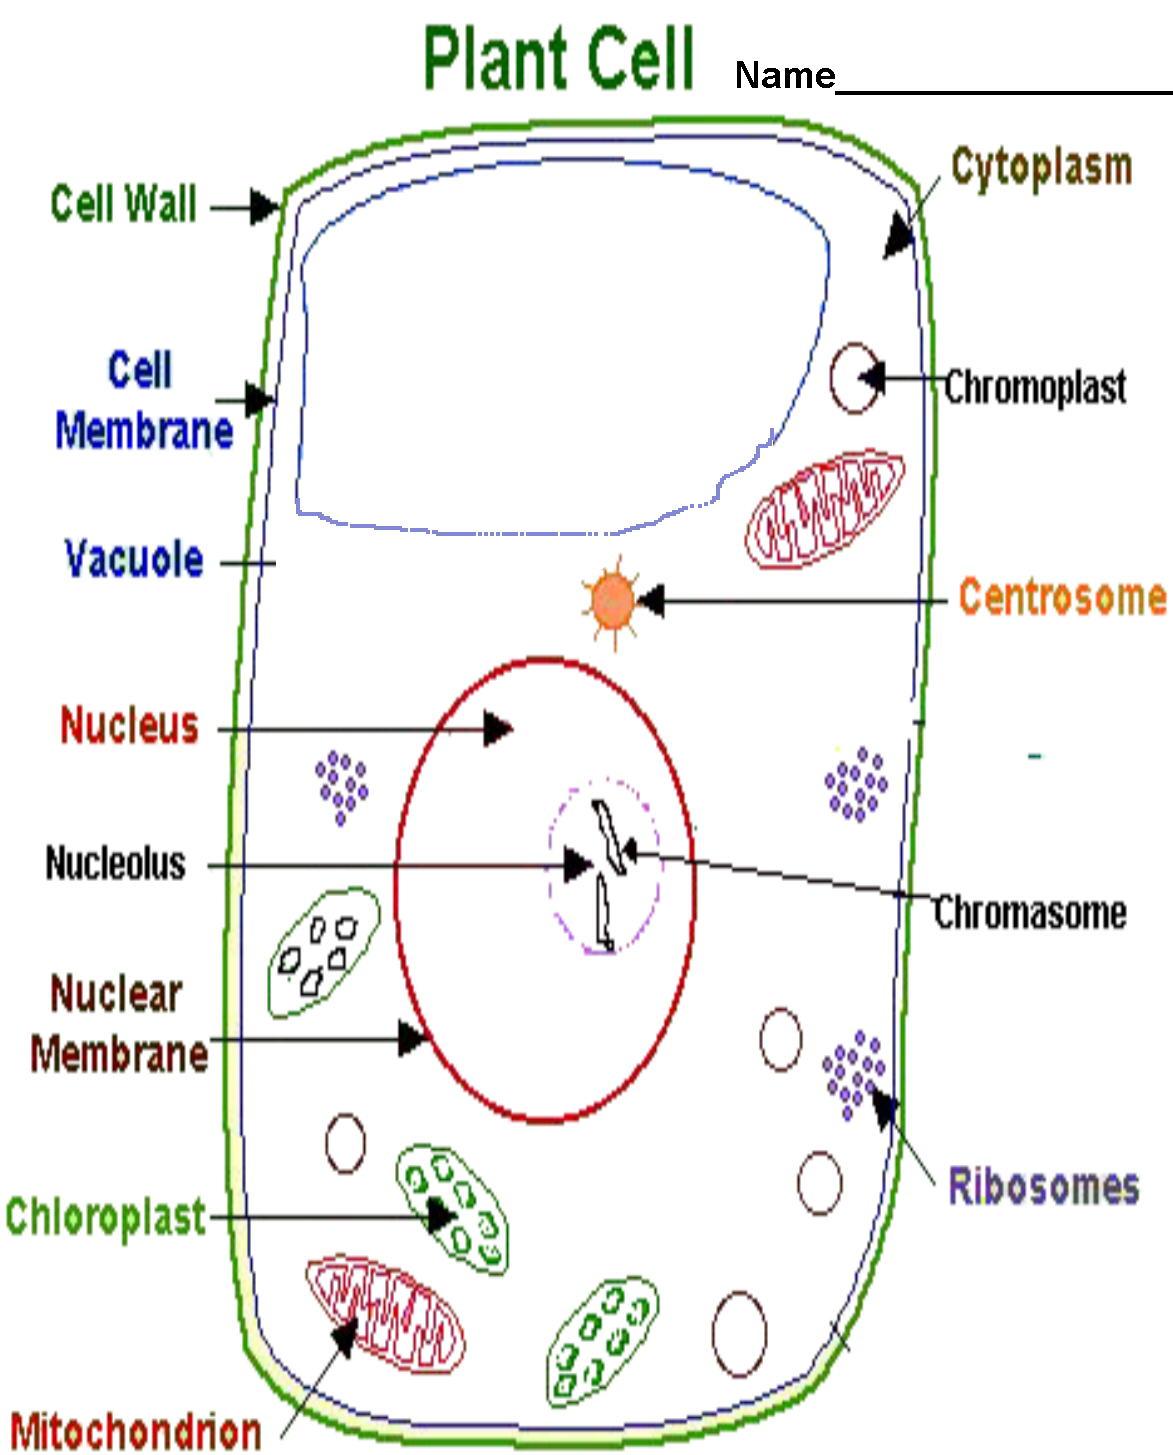 Plant Cell Drawing With Labels At Free For Load Diagram 1173x1455 Collection Of A High